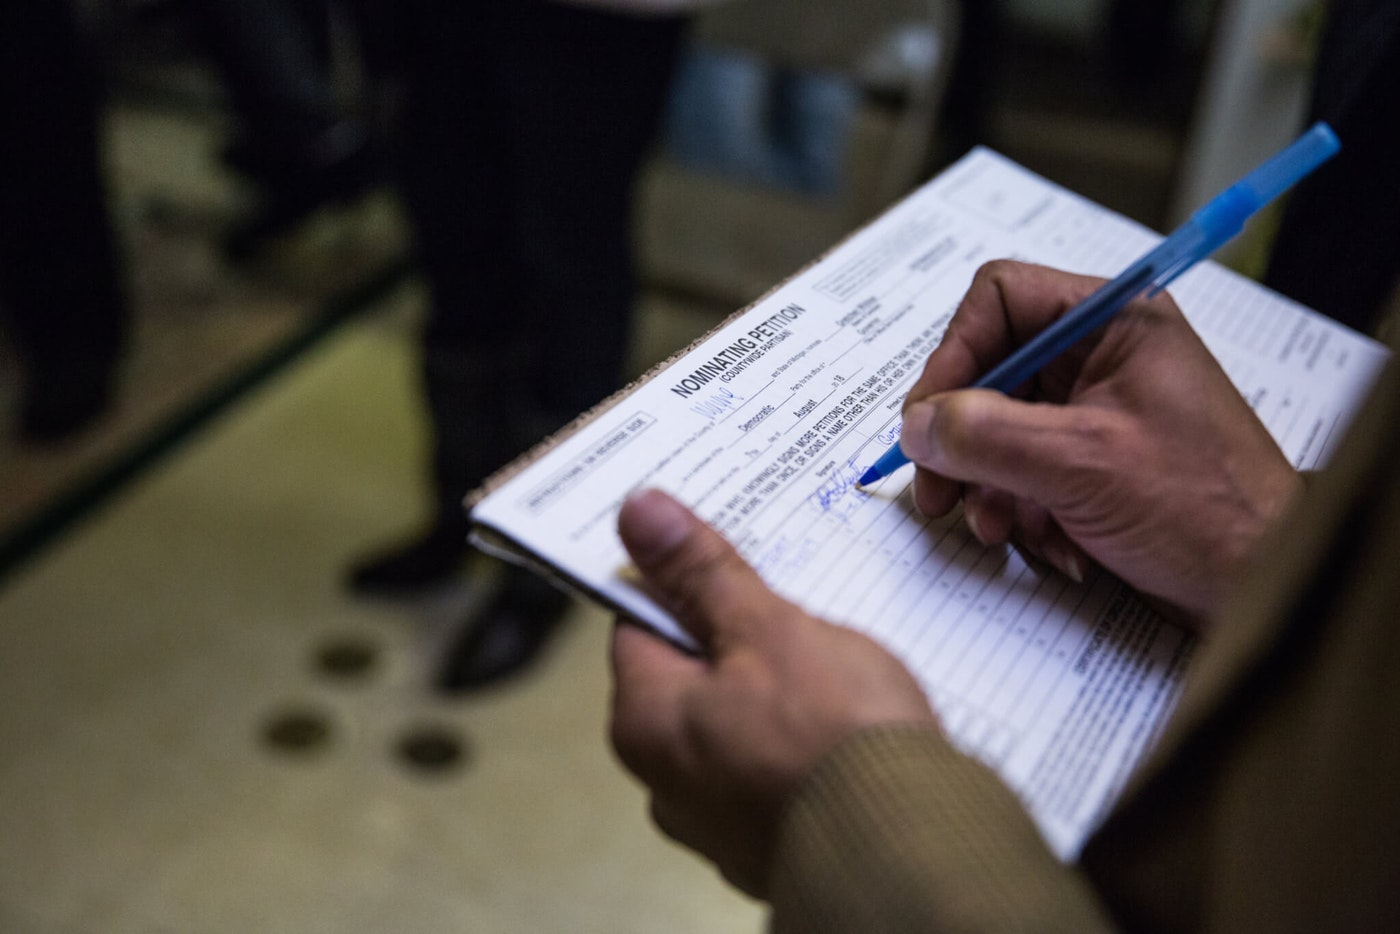 DETROIT, MI  - DECEMBER 19: A community member signs a nominating petition to help gain Gretchen Whitmer ballot access for Michigan Governor.  (Photo by Ali Lapetina for The Washington Post via Getty Images)